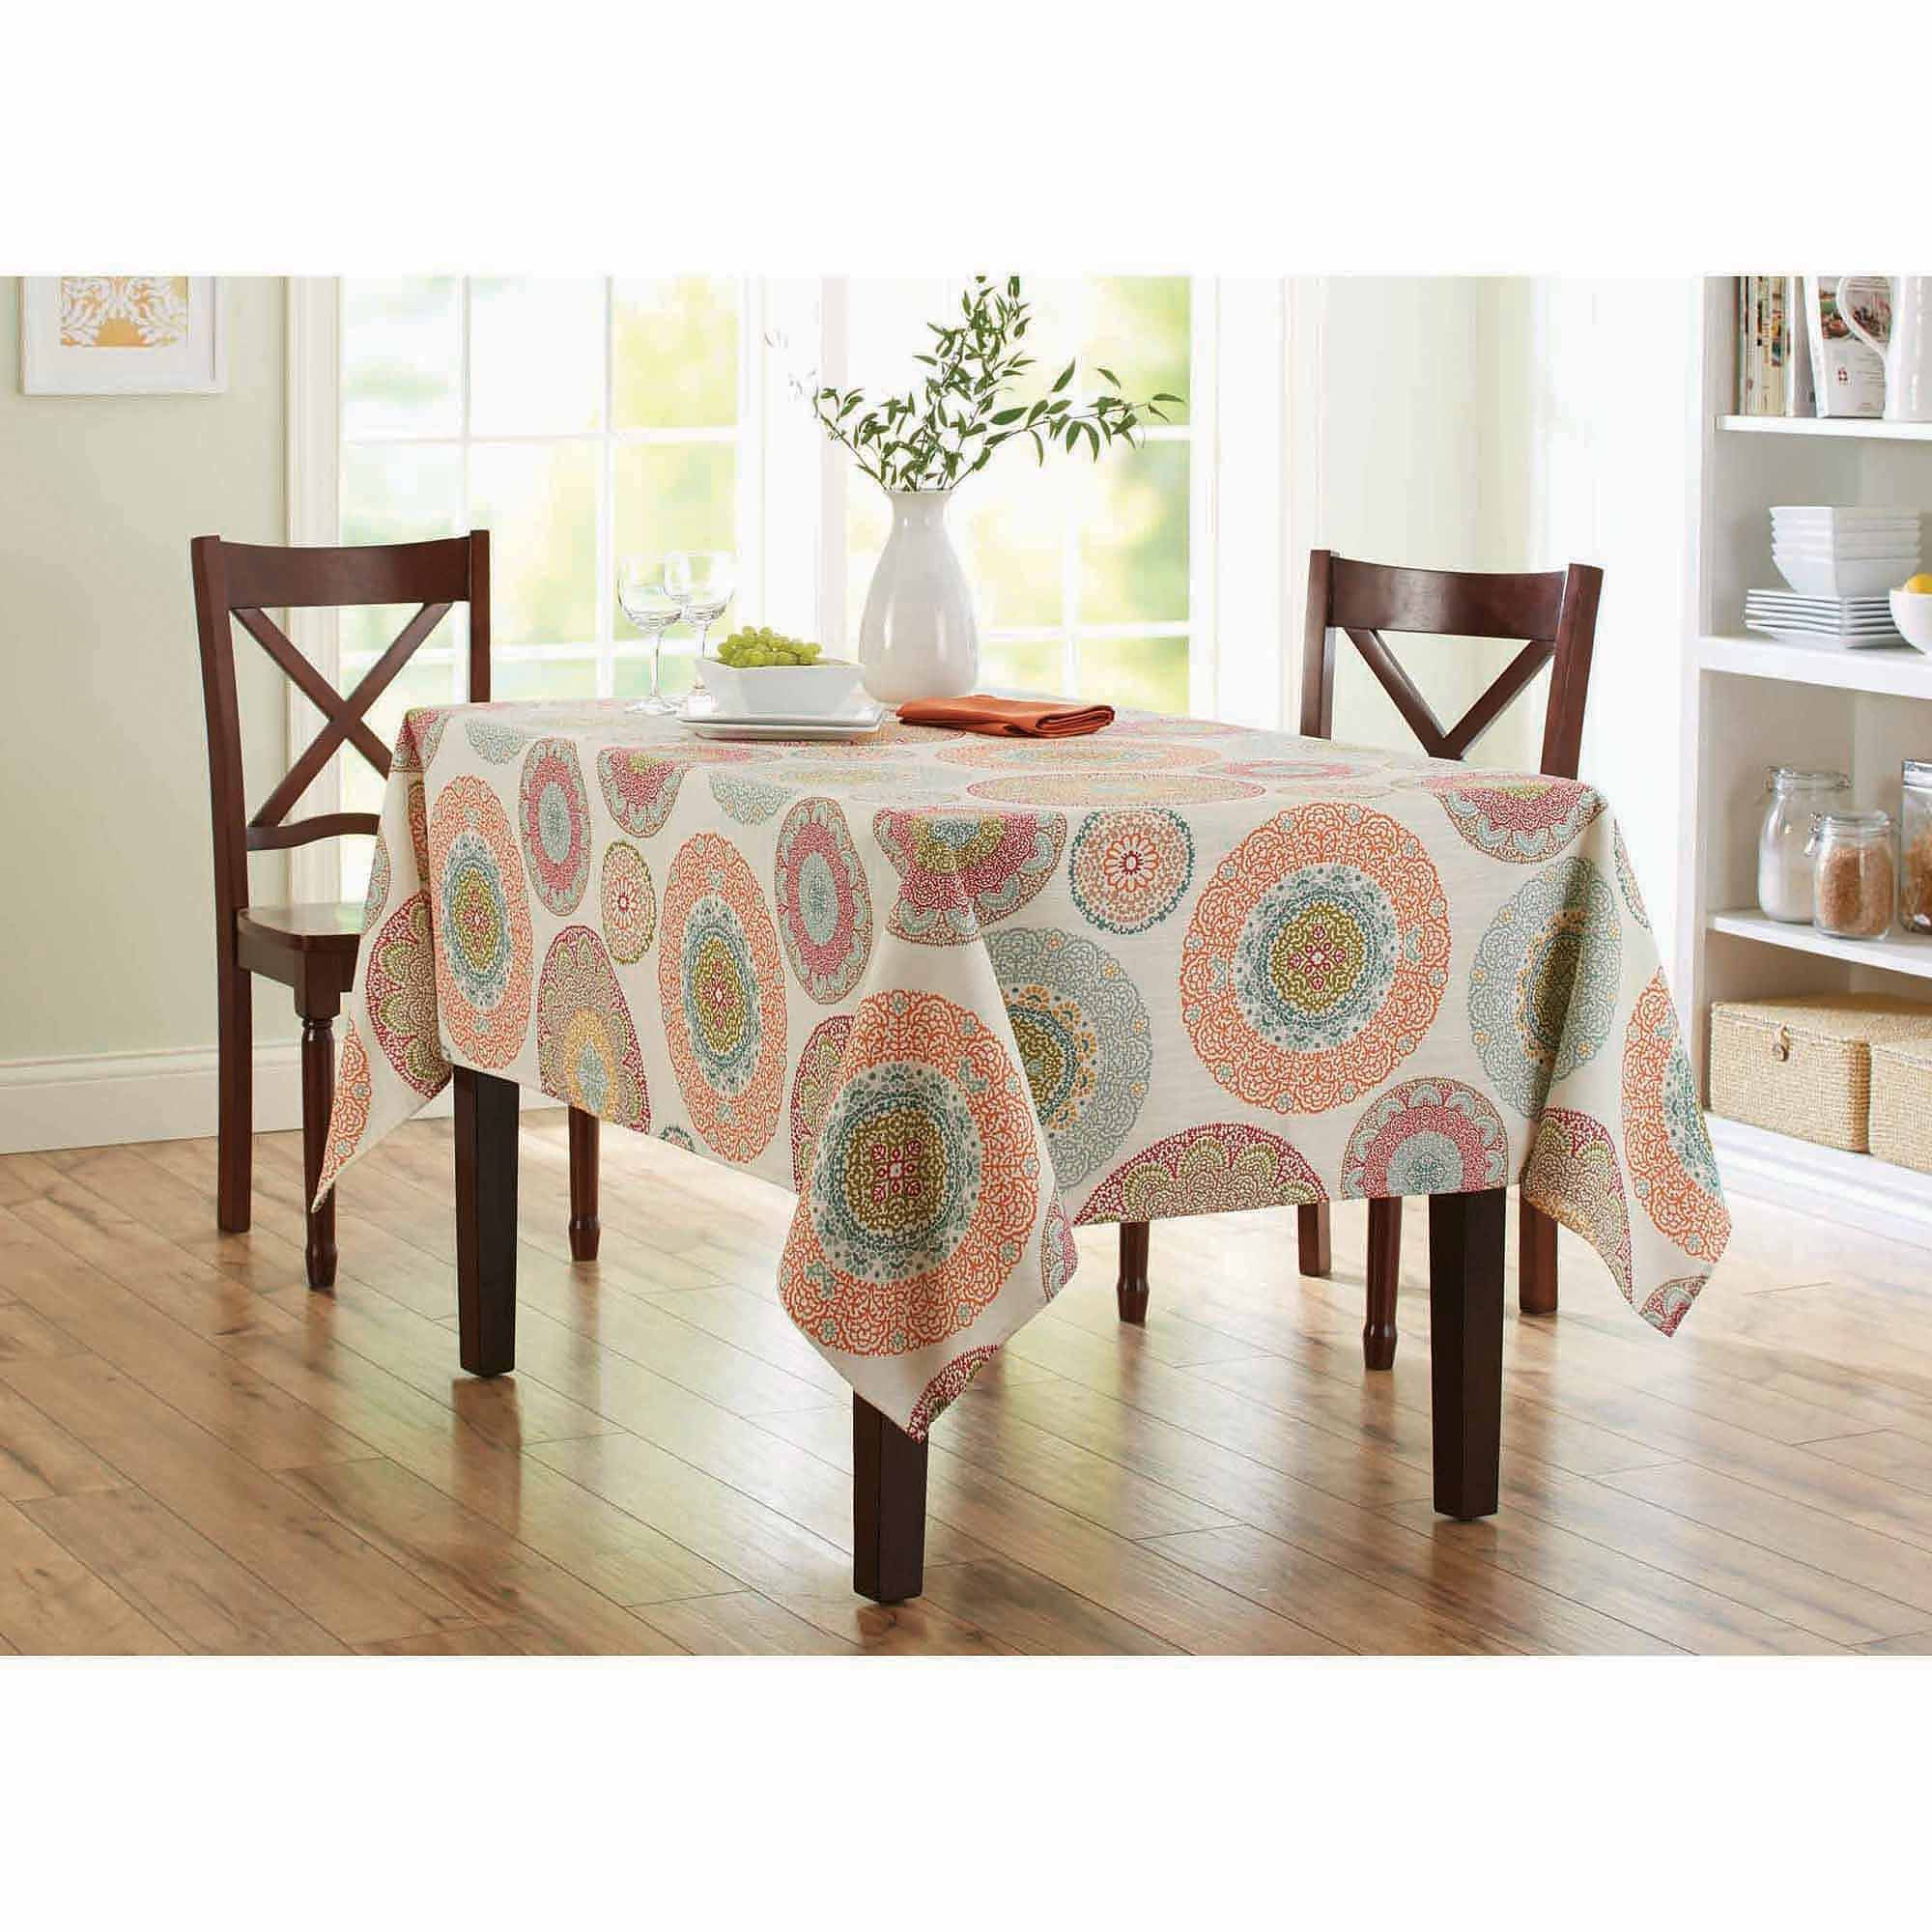 tablecloth for round accent table and better homes gardens lace medallion available cloth summer patio furniture thin wine rack charging station all metal coffee mirrored box home